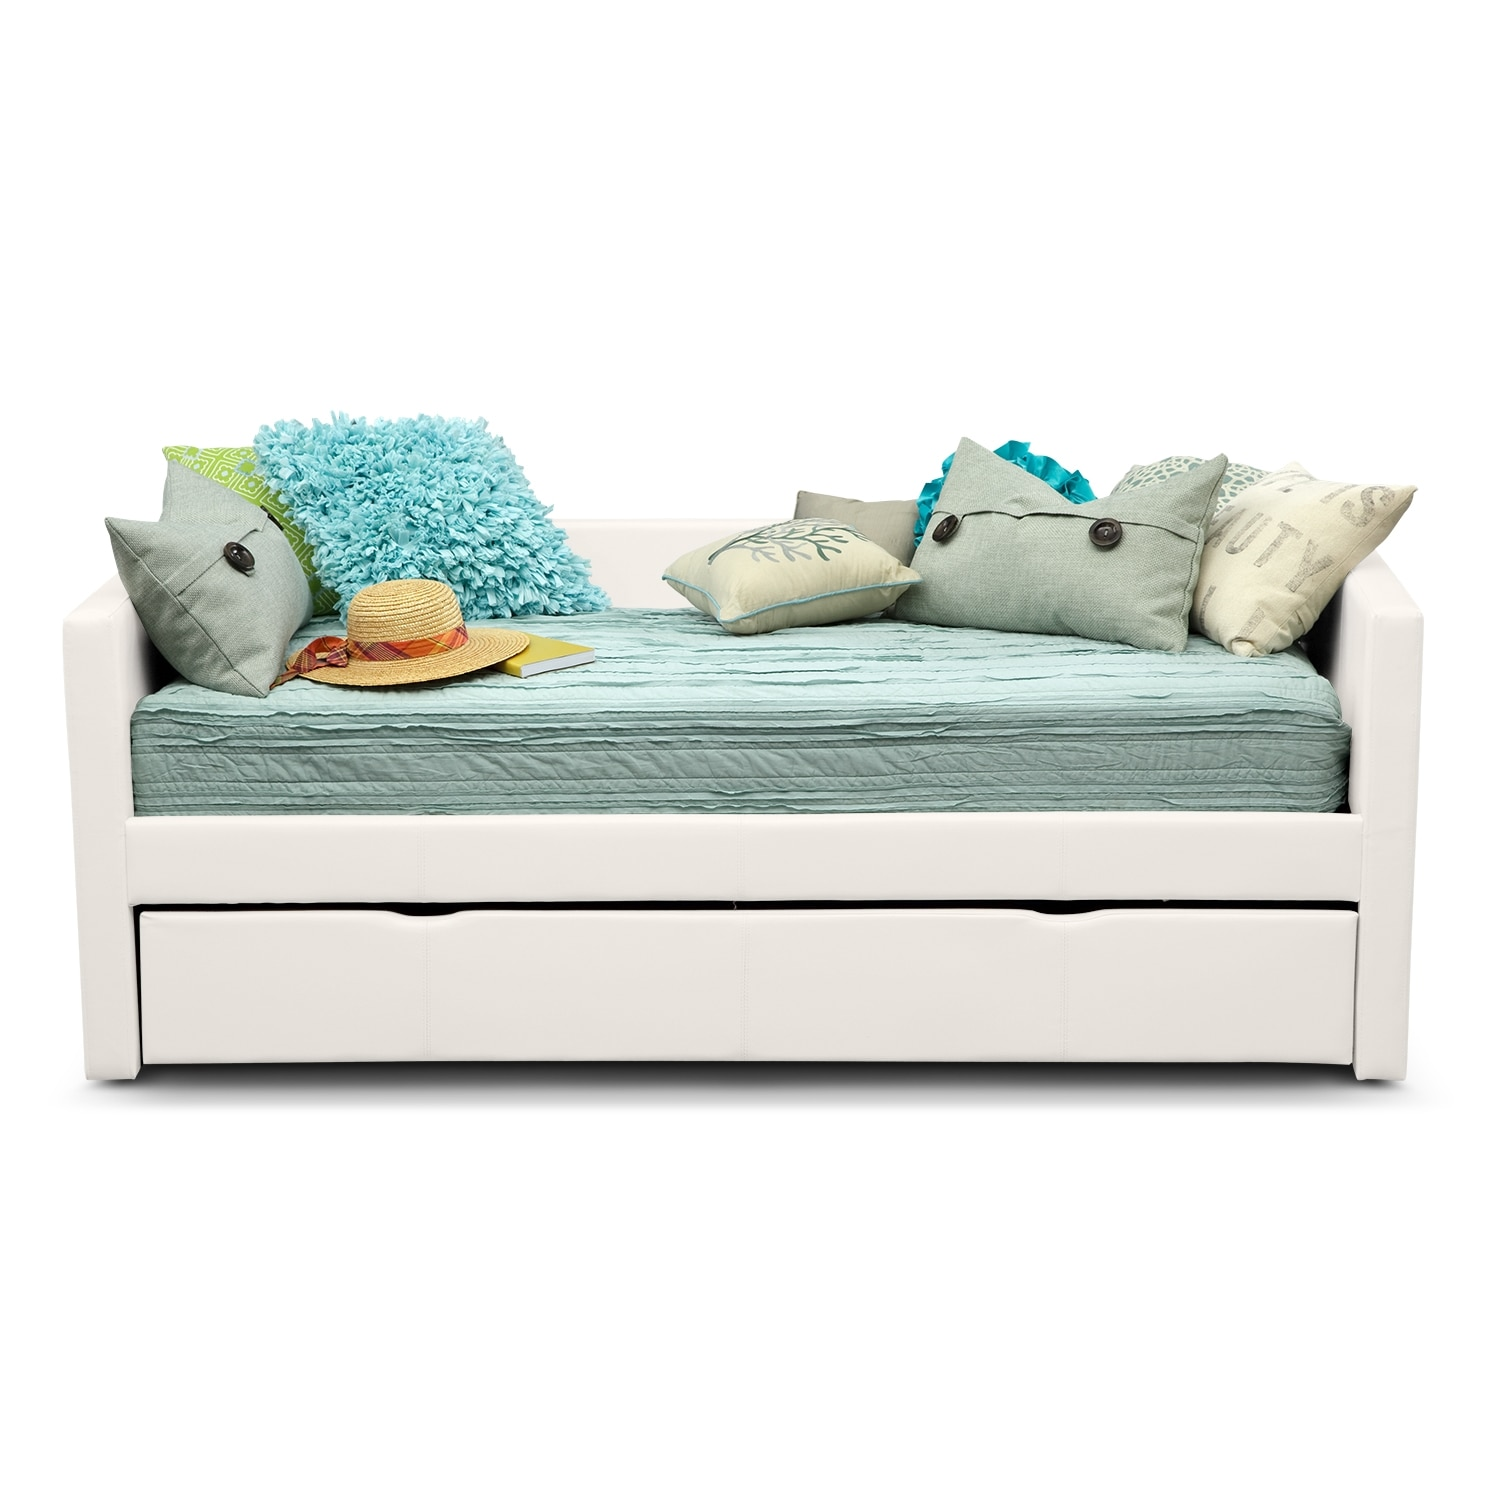 Carey twin daybed with trundle white value city furniture Best trundle bed